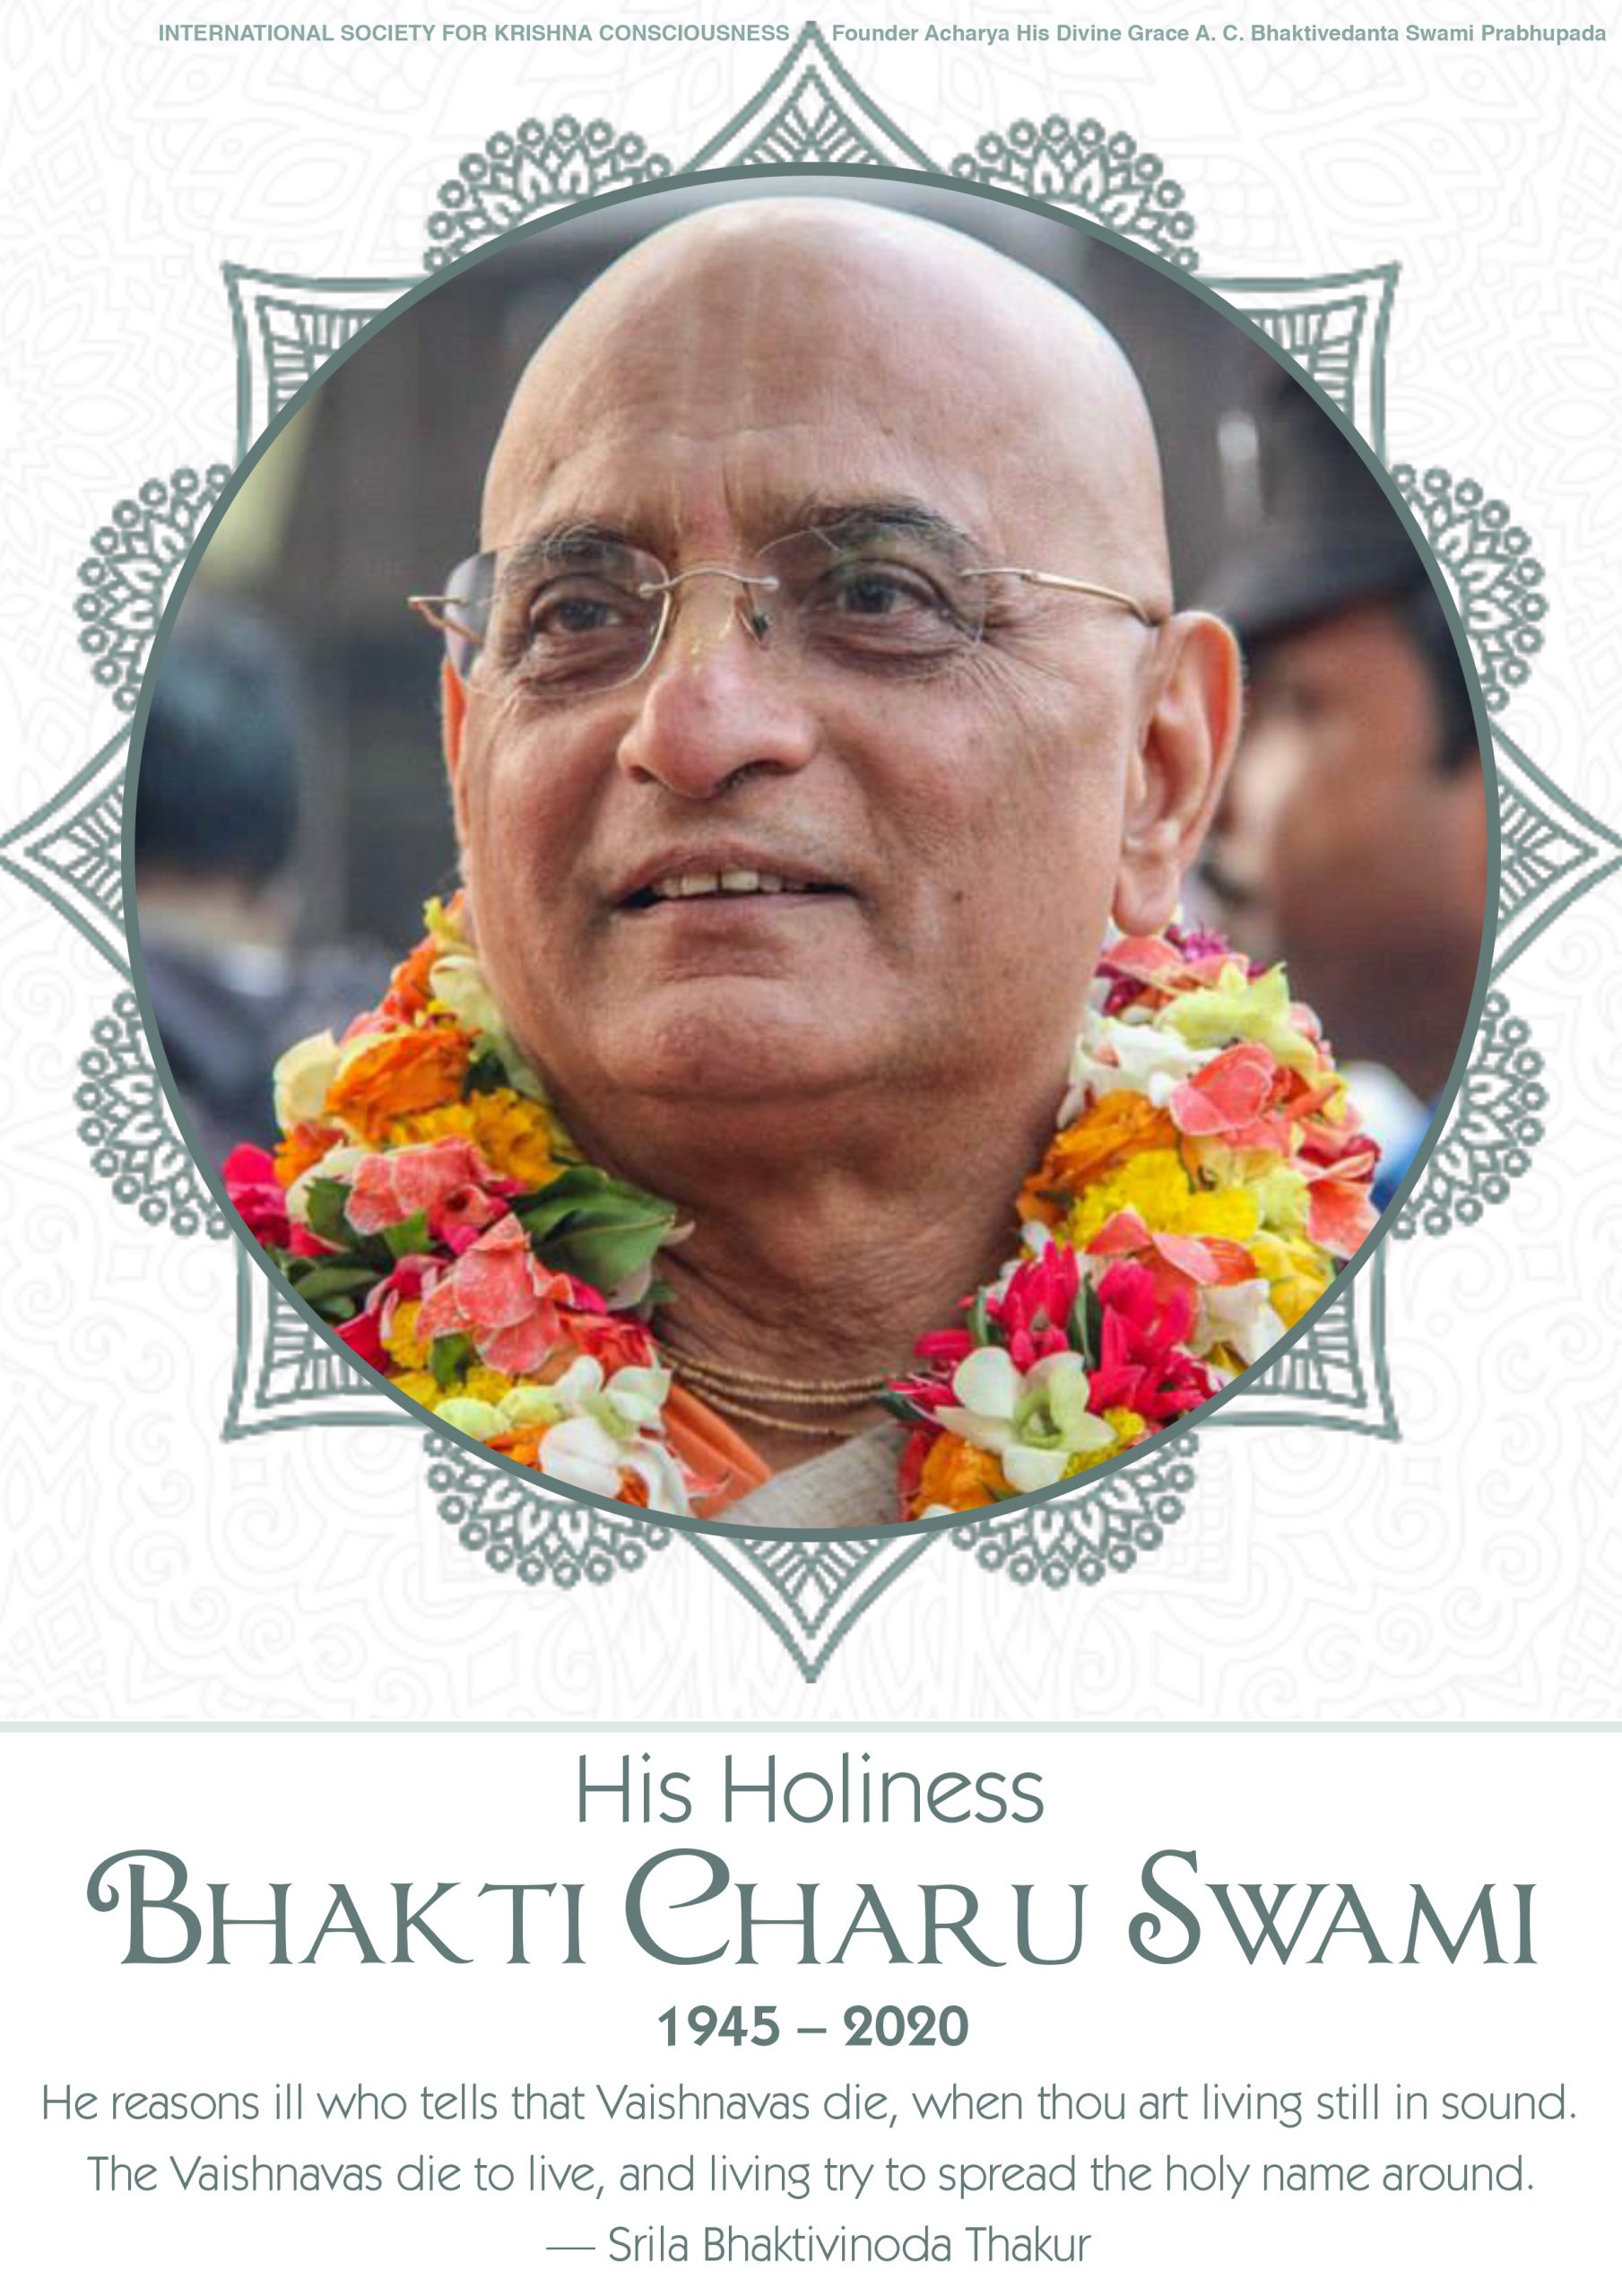 Tributes to His Holiness Bhakti Charu Swami